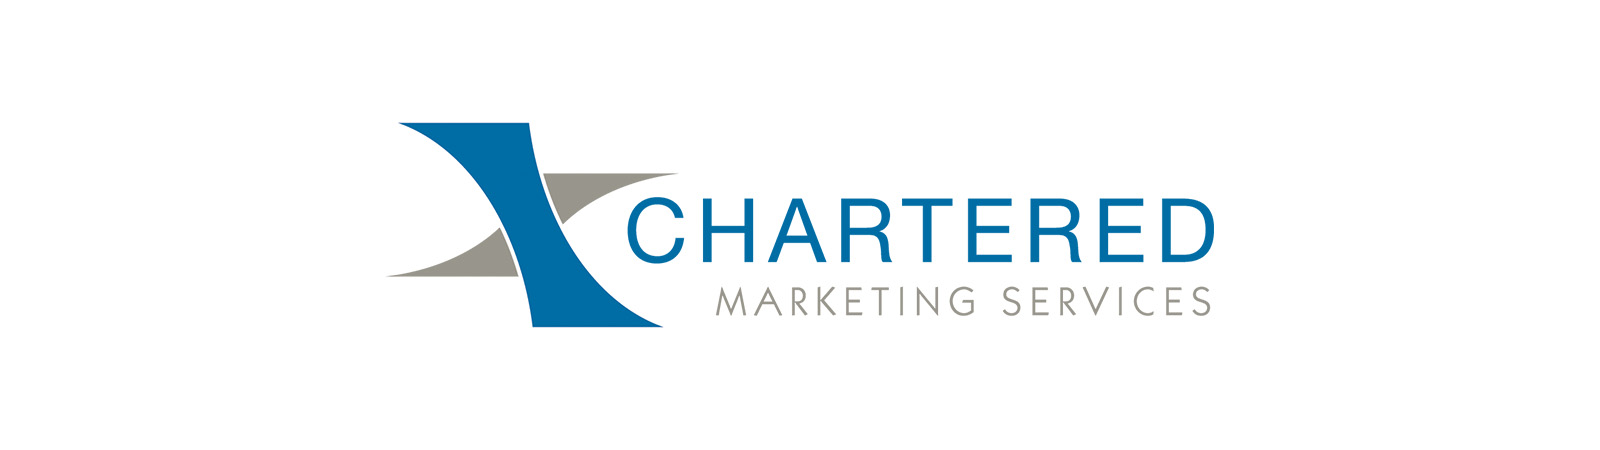 Chartered Marketing Services Logo Image